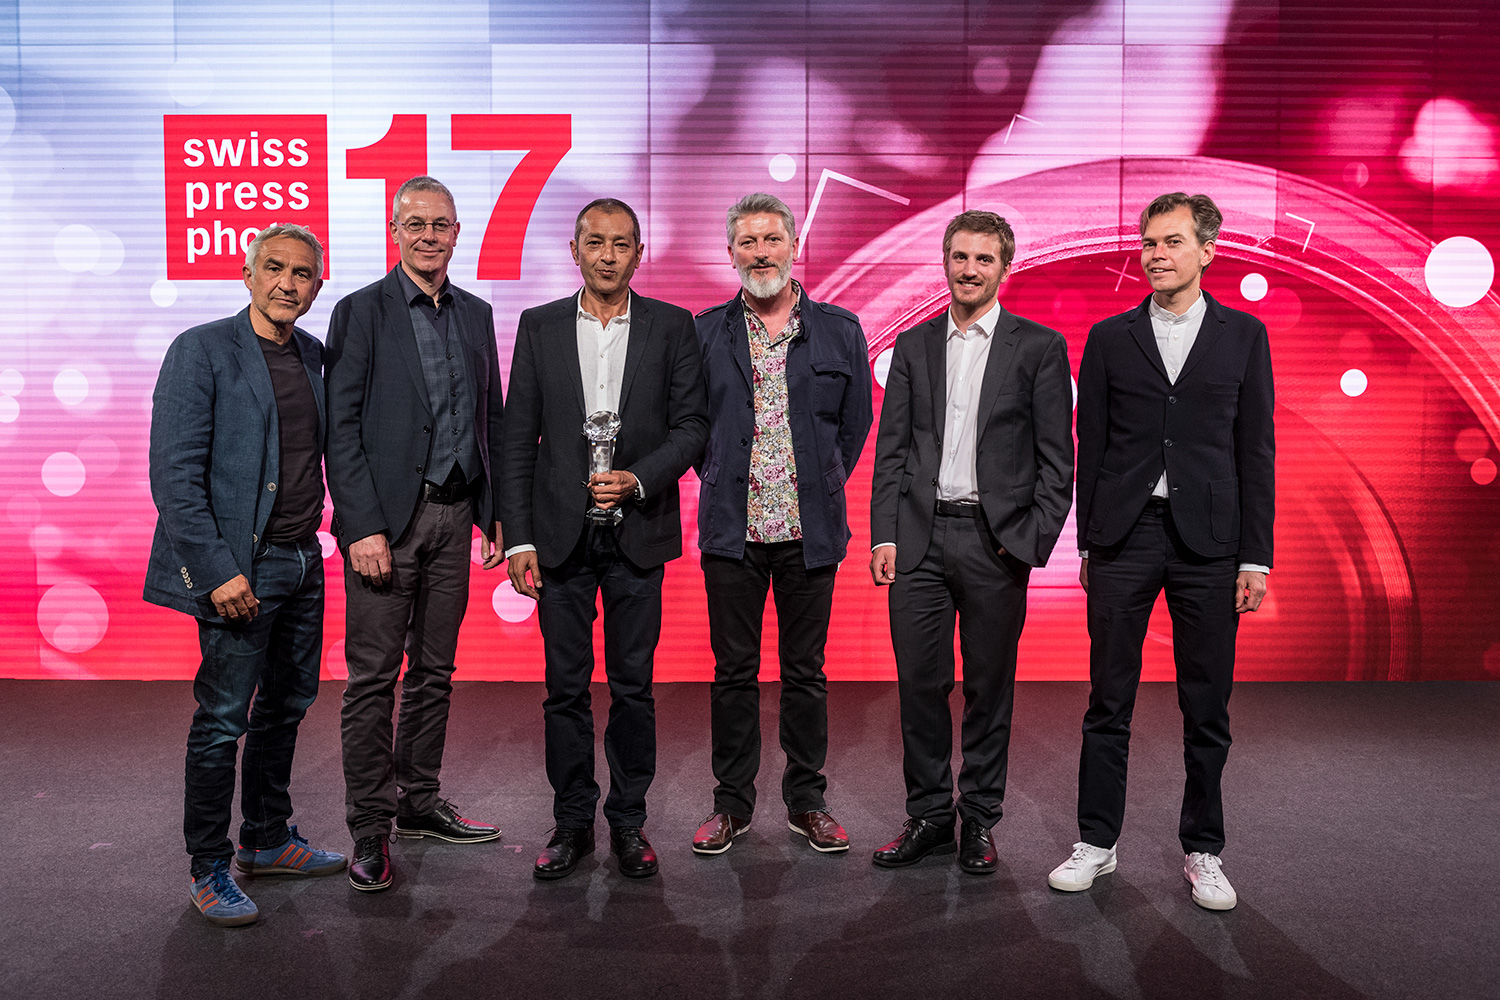 The award-winning photographers pose on the stage, from left to right, Rolf Neeser, Urs Bucher, Zalmai Ahad as Photographer of the Year, Mark Henley, Anthony Anex and Stephan Rappo, on Wednesday, April 26, 2017, at the award ceremony for the Swiss Media Prize Swiss Press Award 17 at the Hotel Bellevue in Bern. (KEYSTONE/Alessandro della Valle)